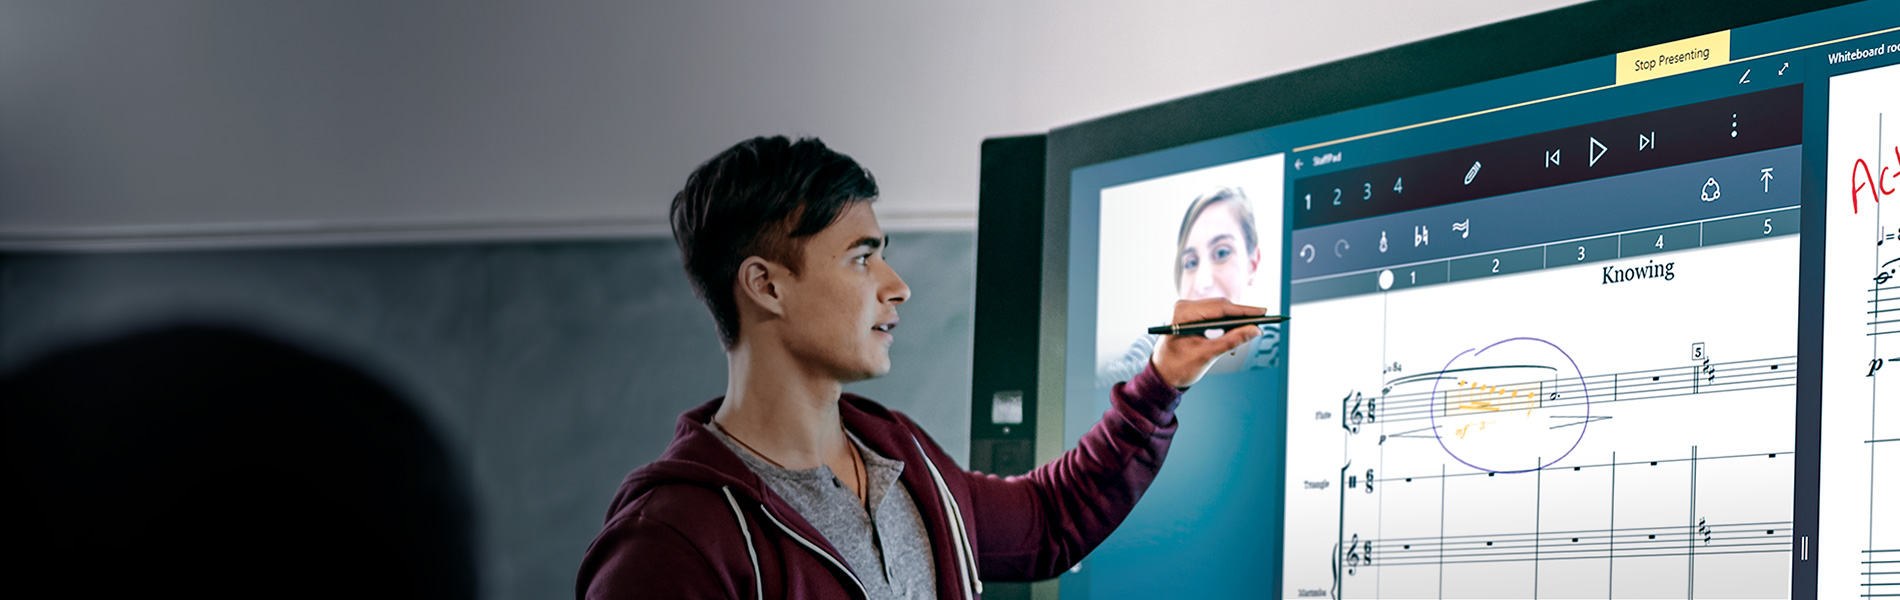 Picture of a man interacting with skype on a large monitor.